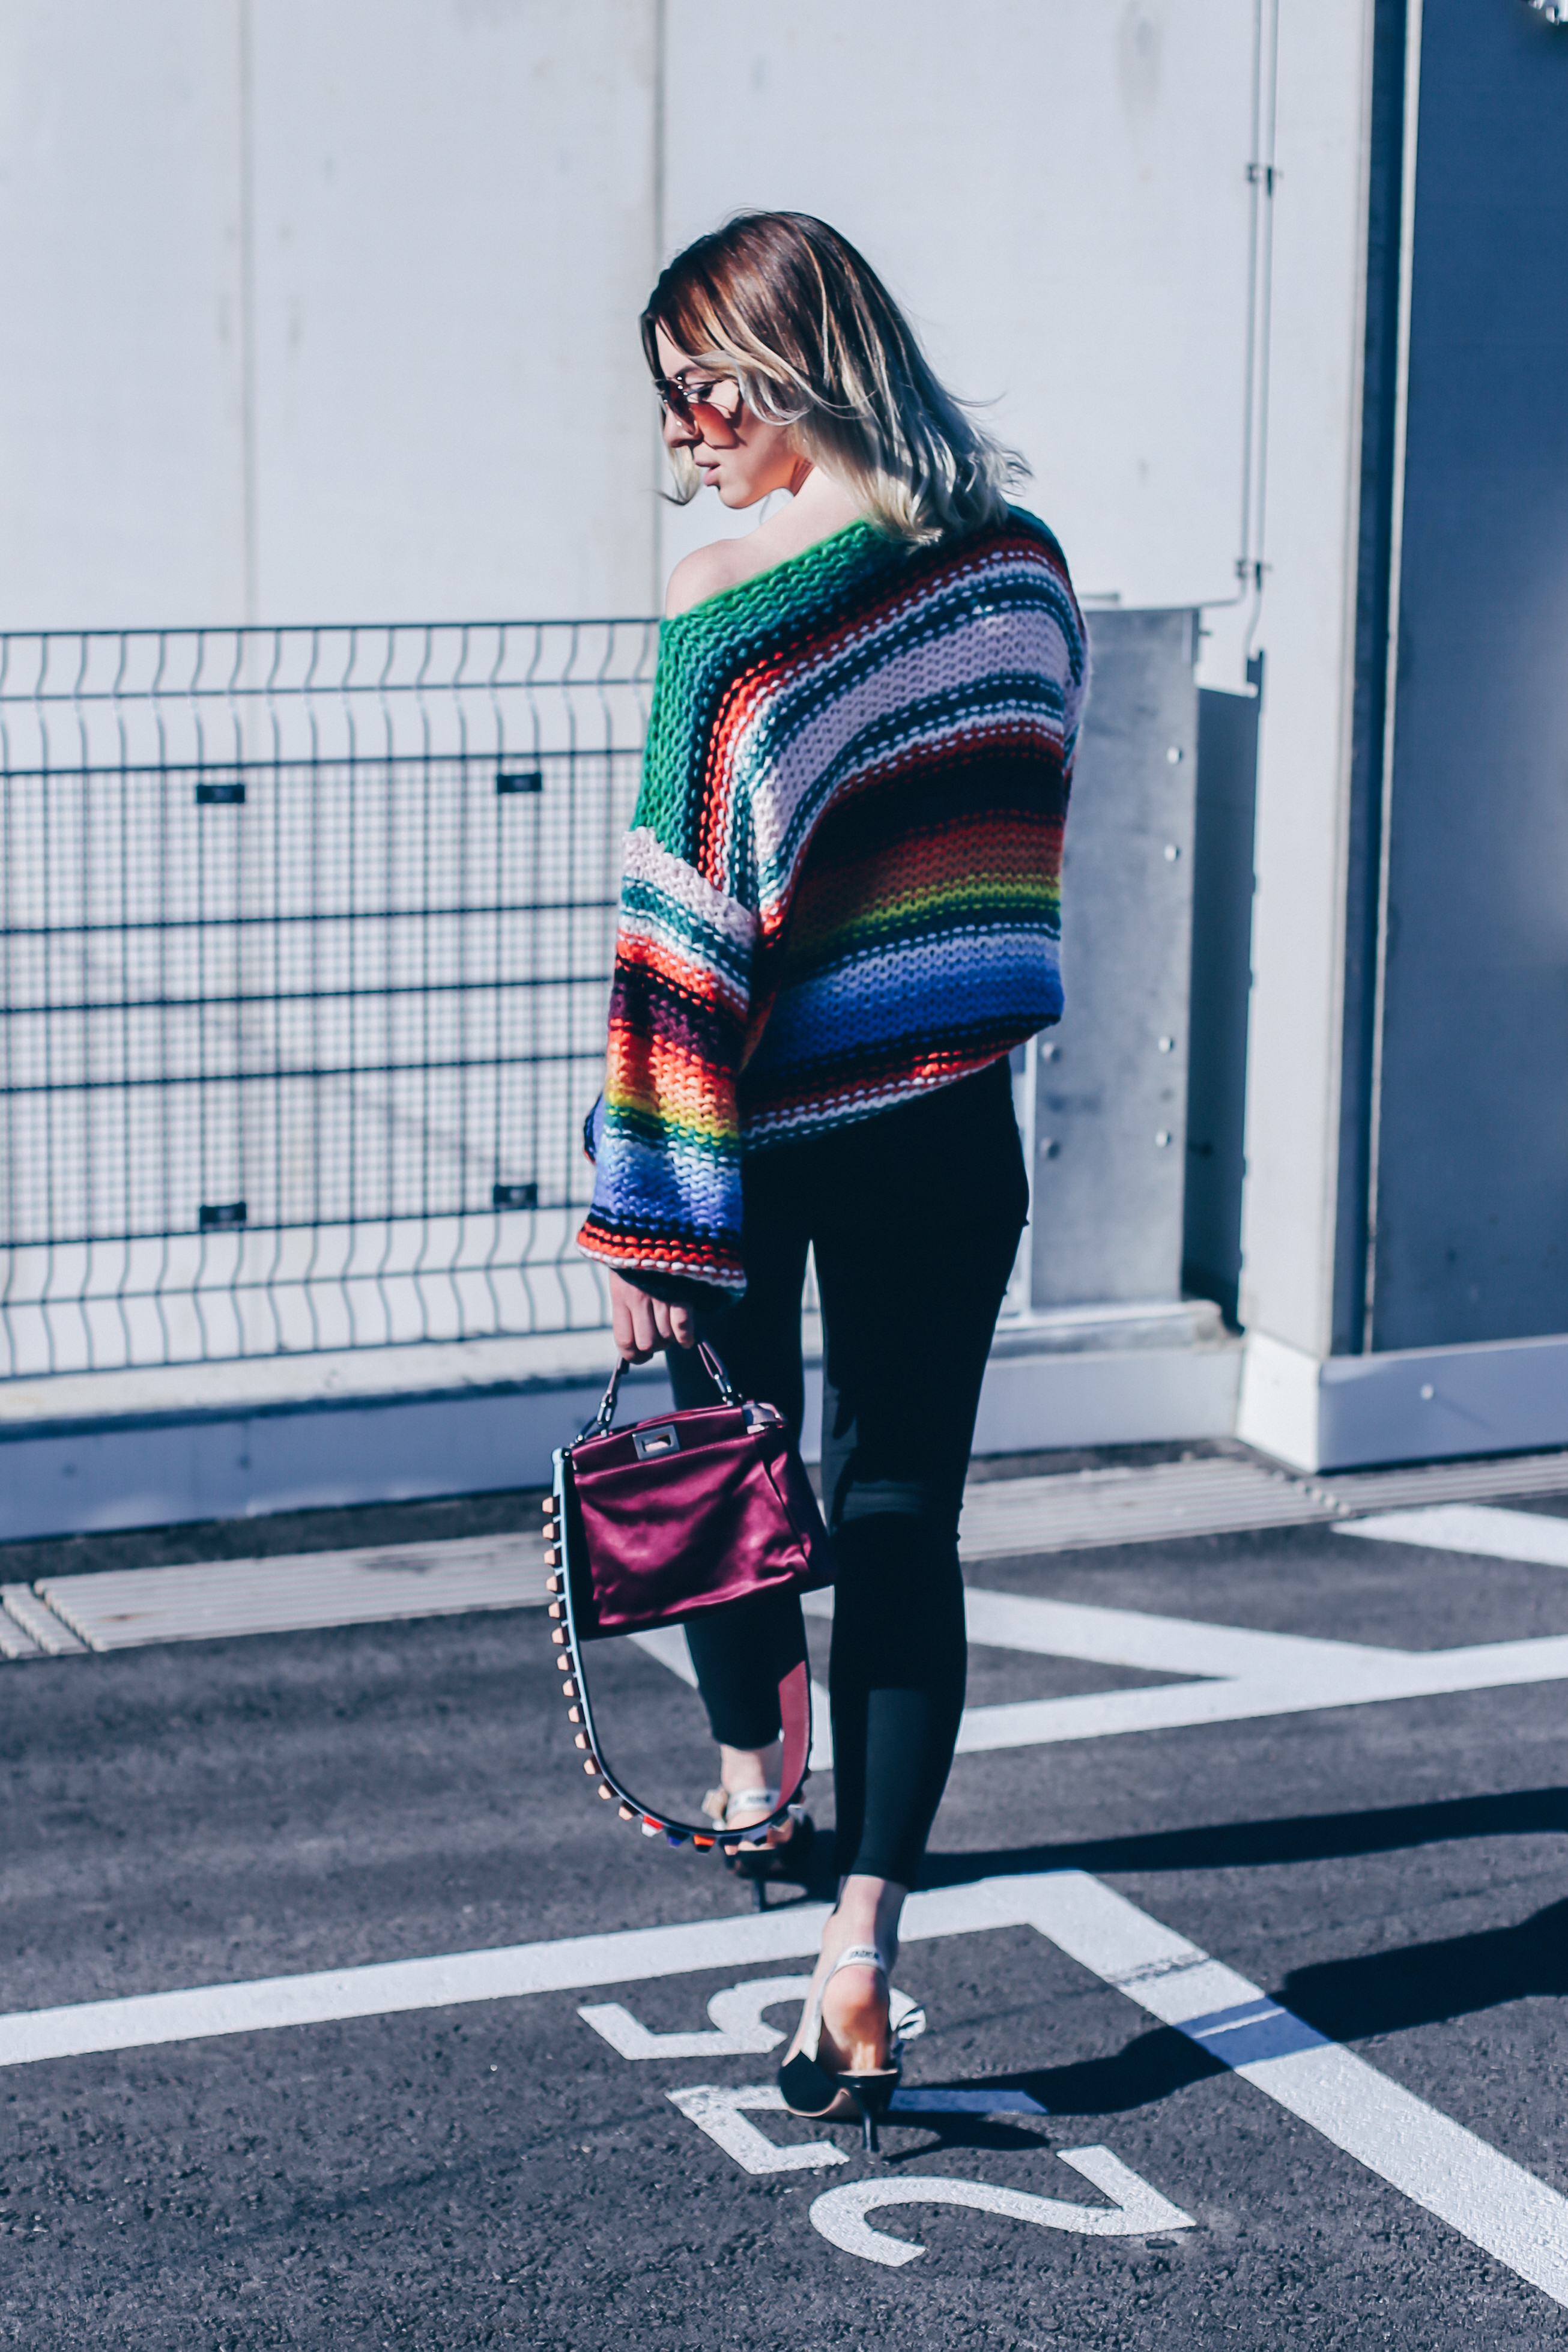 How to wear Bold Stripes, Outfit Ideen, Trendreport, Modetrends 2017, bunte Streifen kombinieren, Style Blog, Fashion Blog, Modeblog, Outfit Blog, www.whoismocca.com